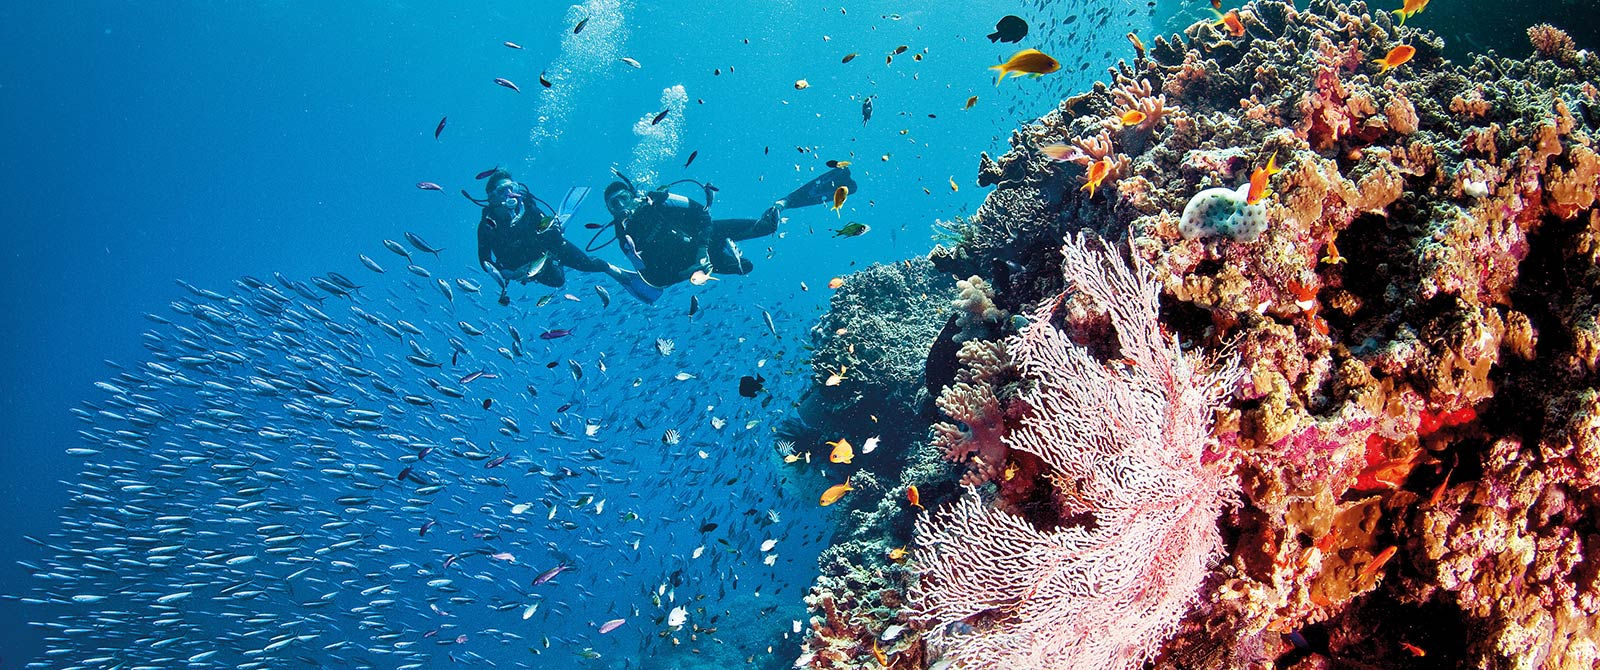 Great Barrier Reef Vacations Australia - Best Great Barrier Reef Tours